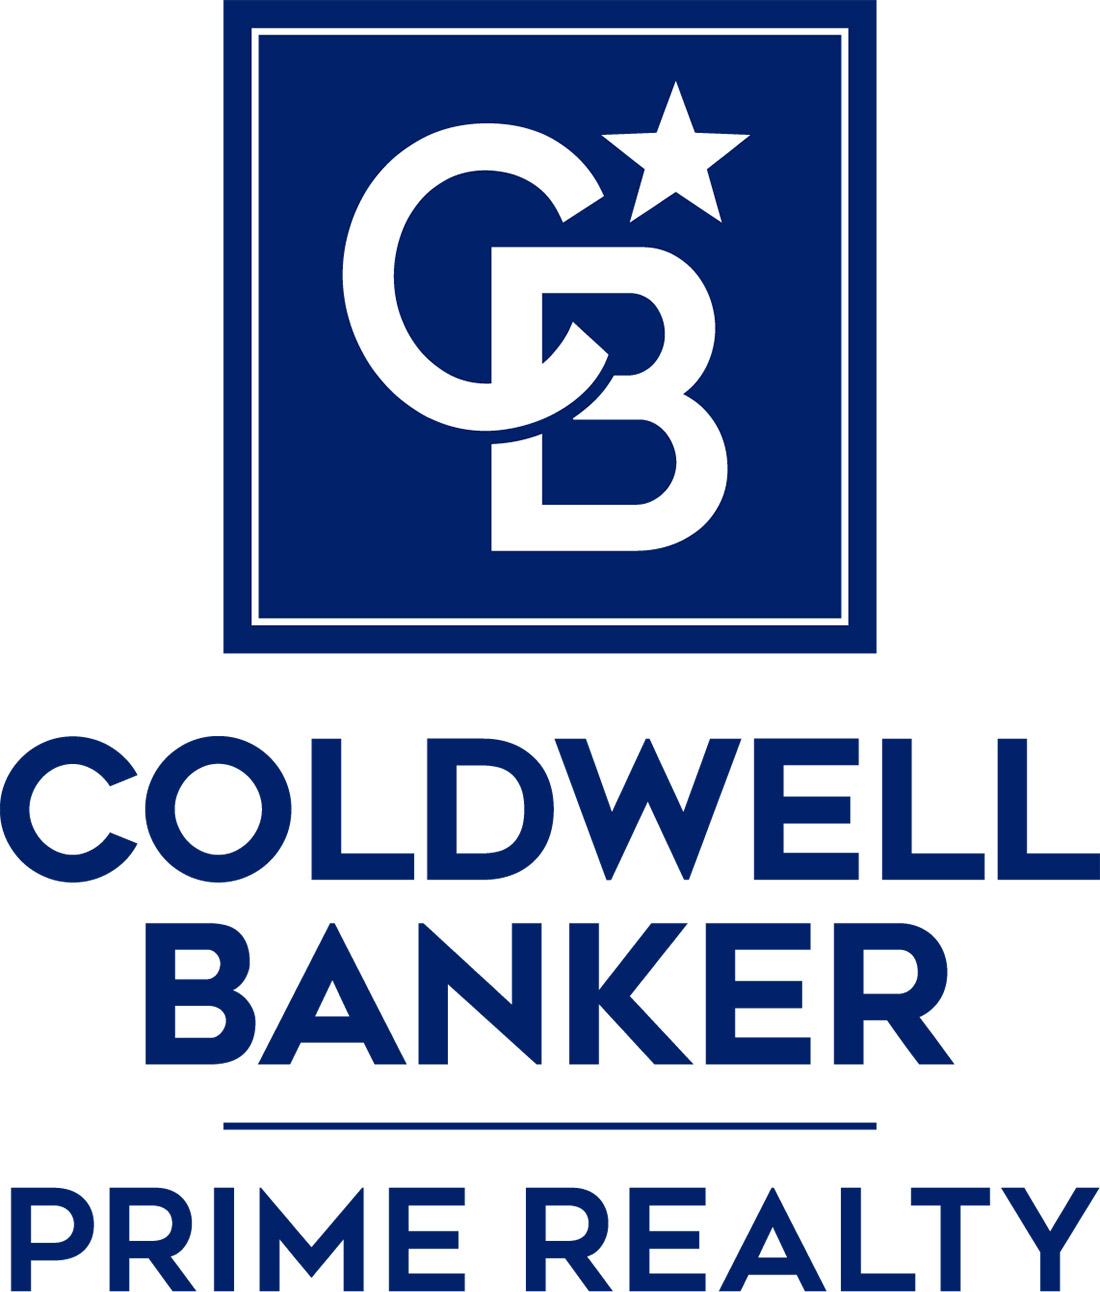 Amy Smith - Coldwell Banker Prime Realty - Carbondale, IL Logo